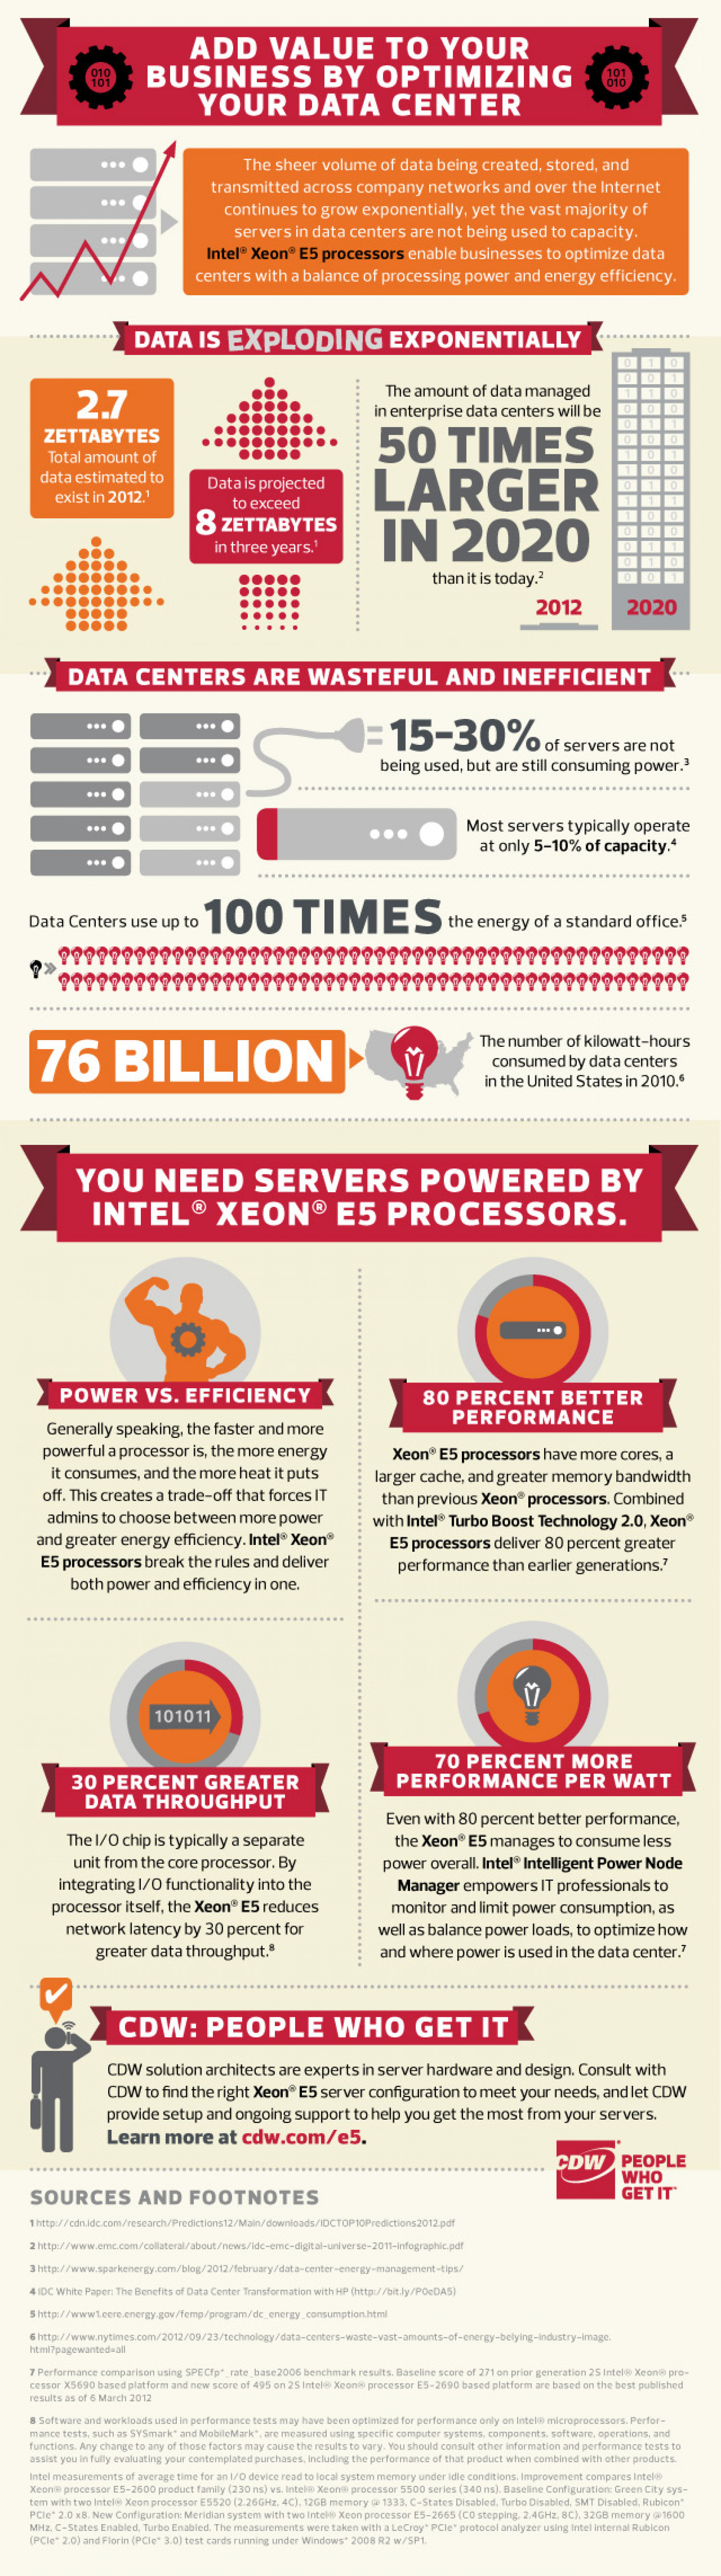 Add Value to your Business by Optimizing Your Data Center Infographic